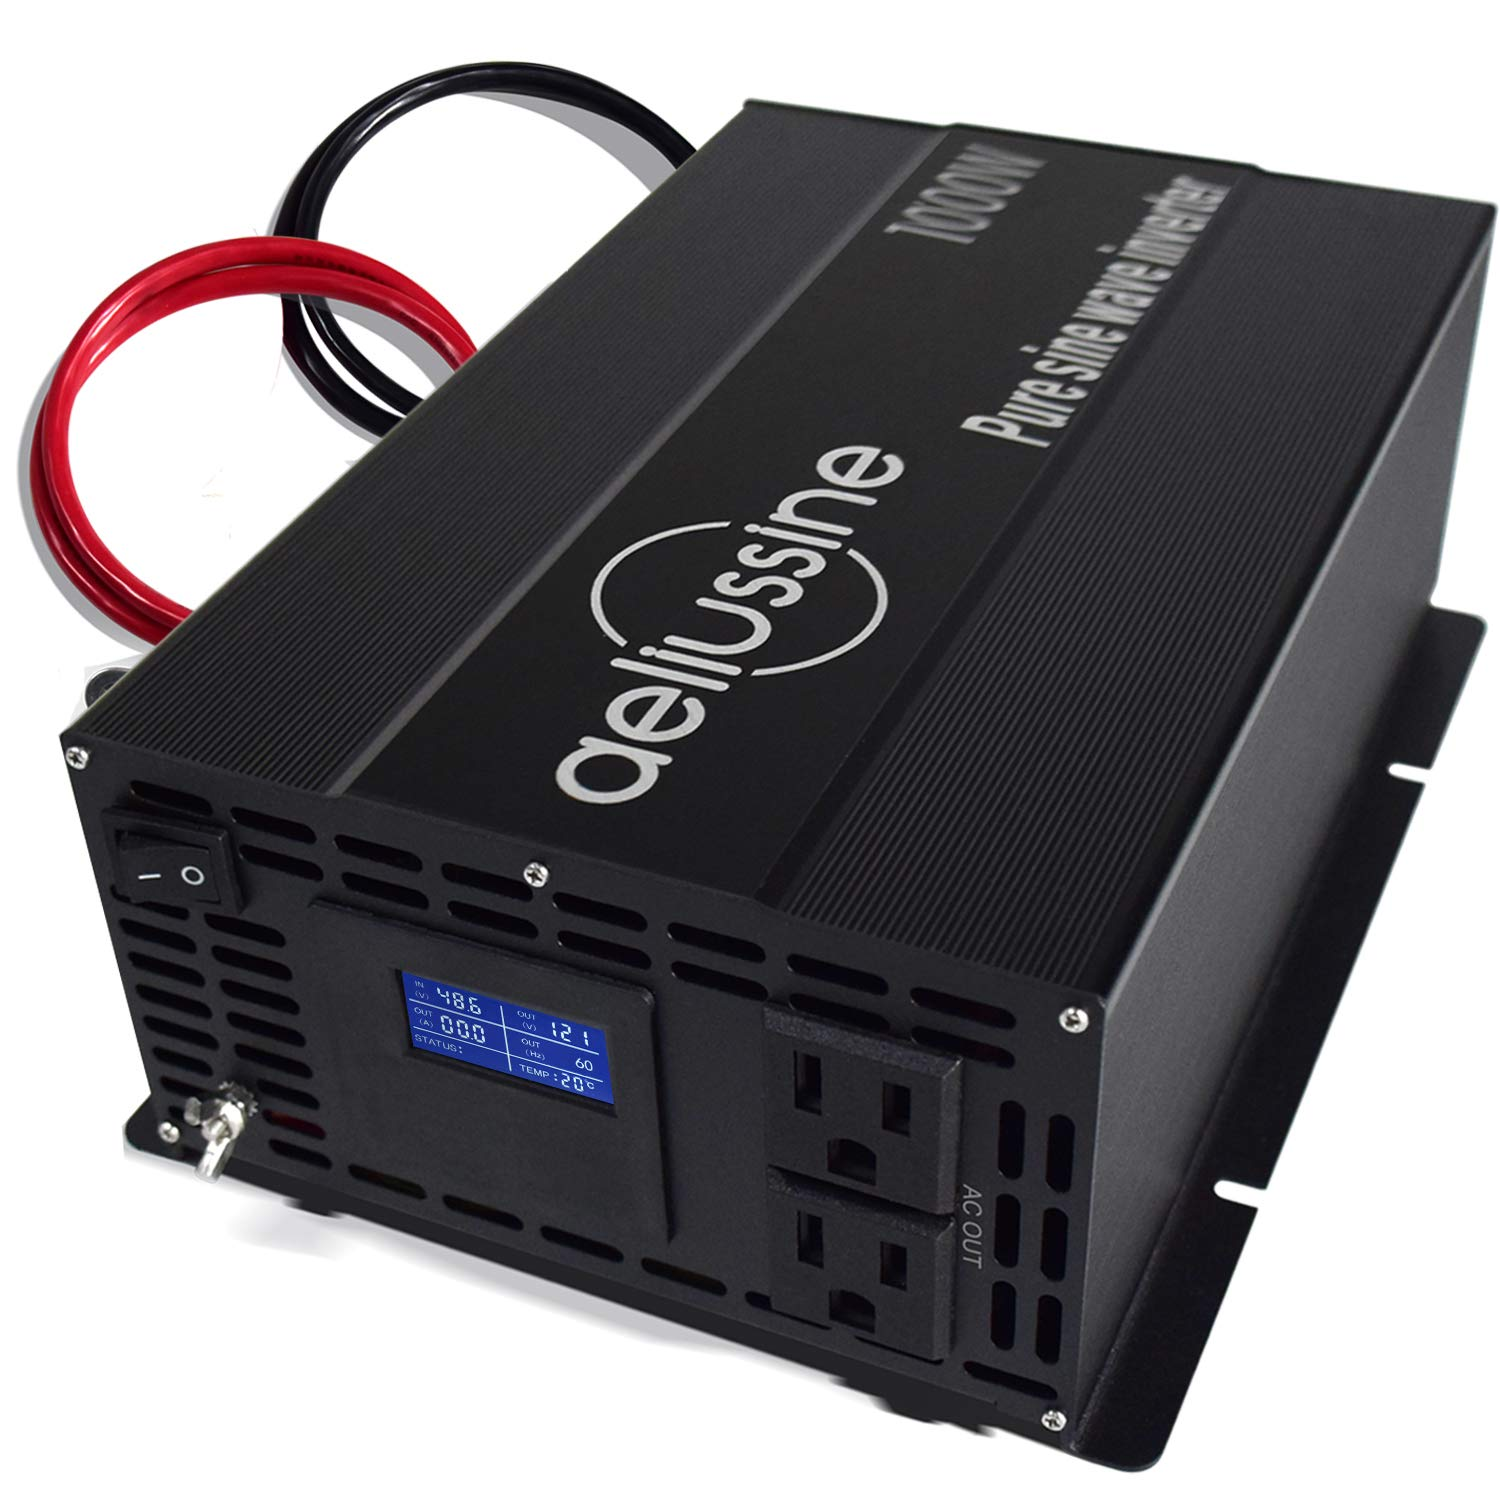 aeliussine 1000w Inverter Pure Sine Wave Power Inverter 48v dc to ac 110v 120v with 2 US Socket, LCD Display and Earth Terminal, for Car RV, Truck, Yacht, and Off Grid Solar Power System (1000w 48v)